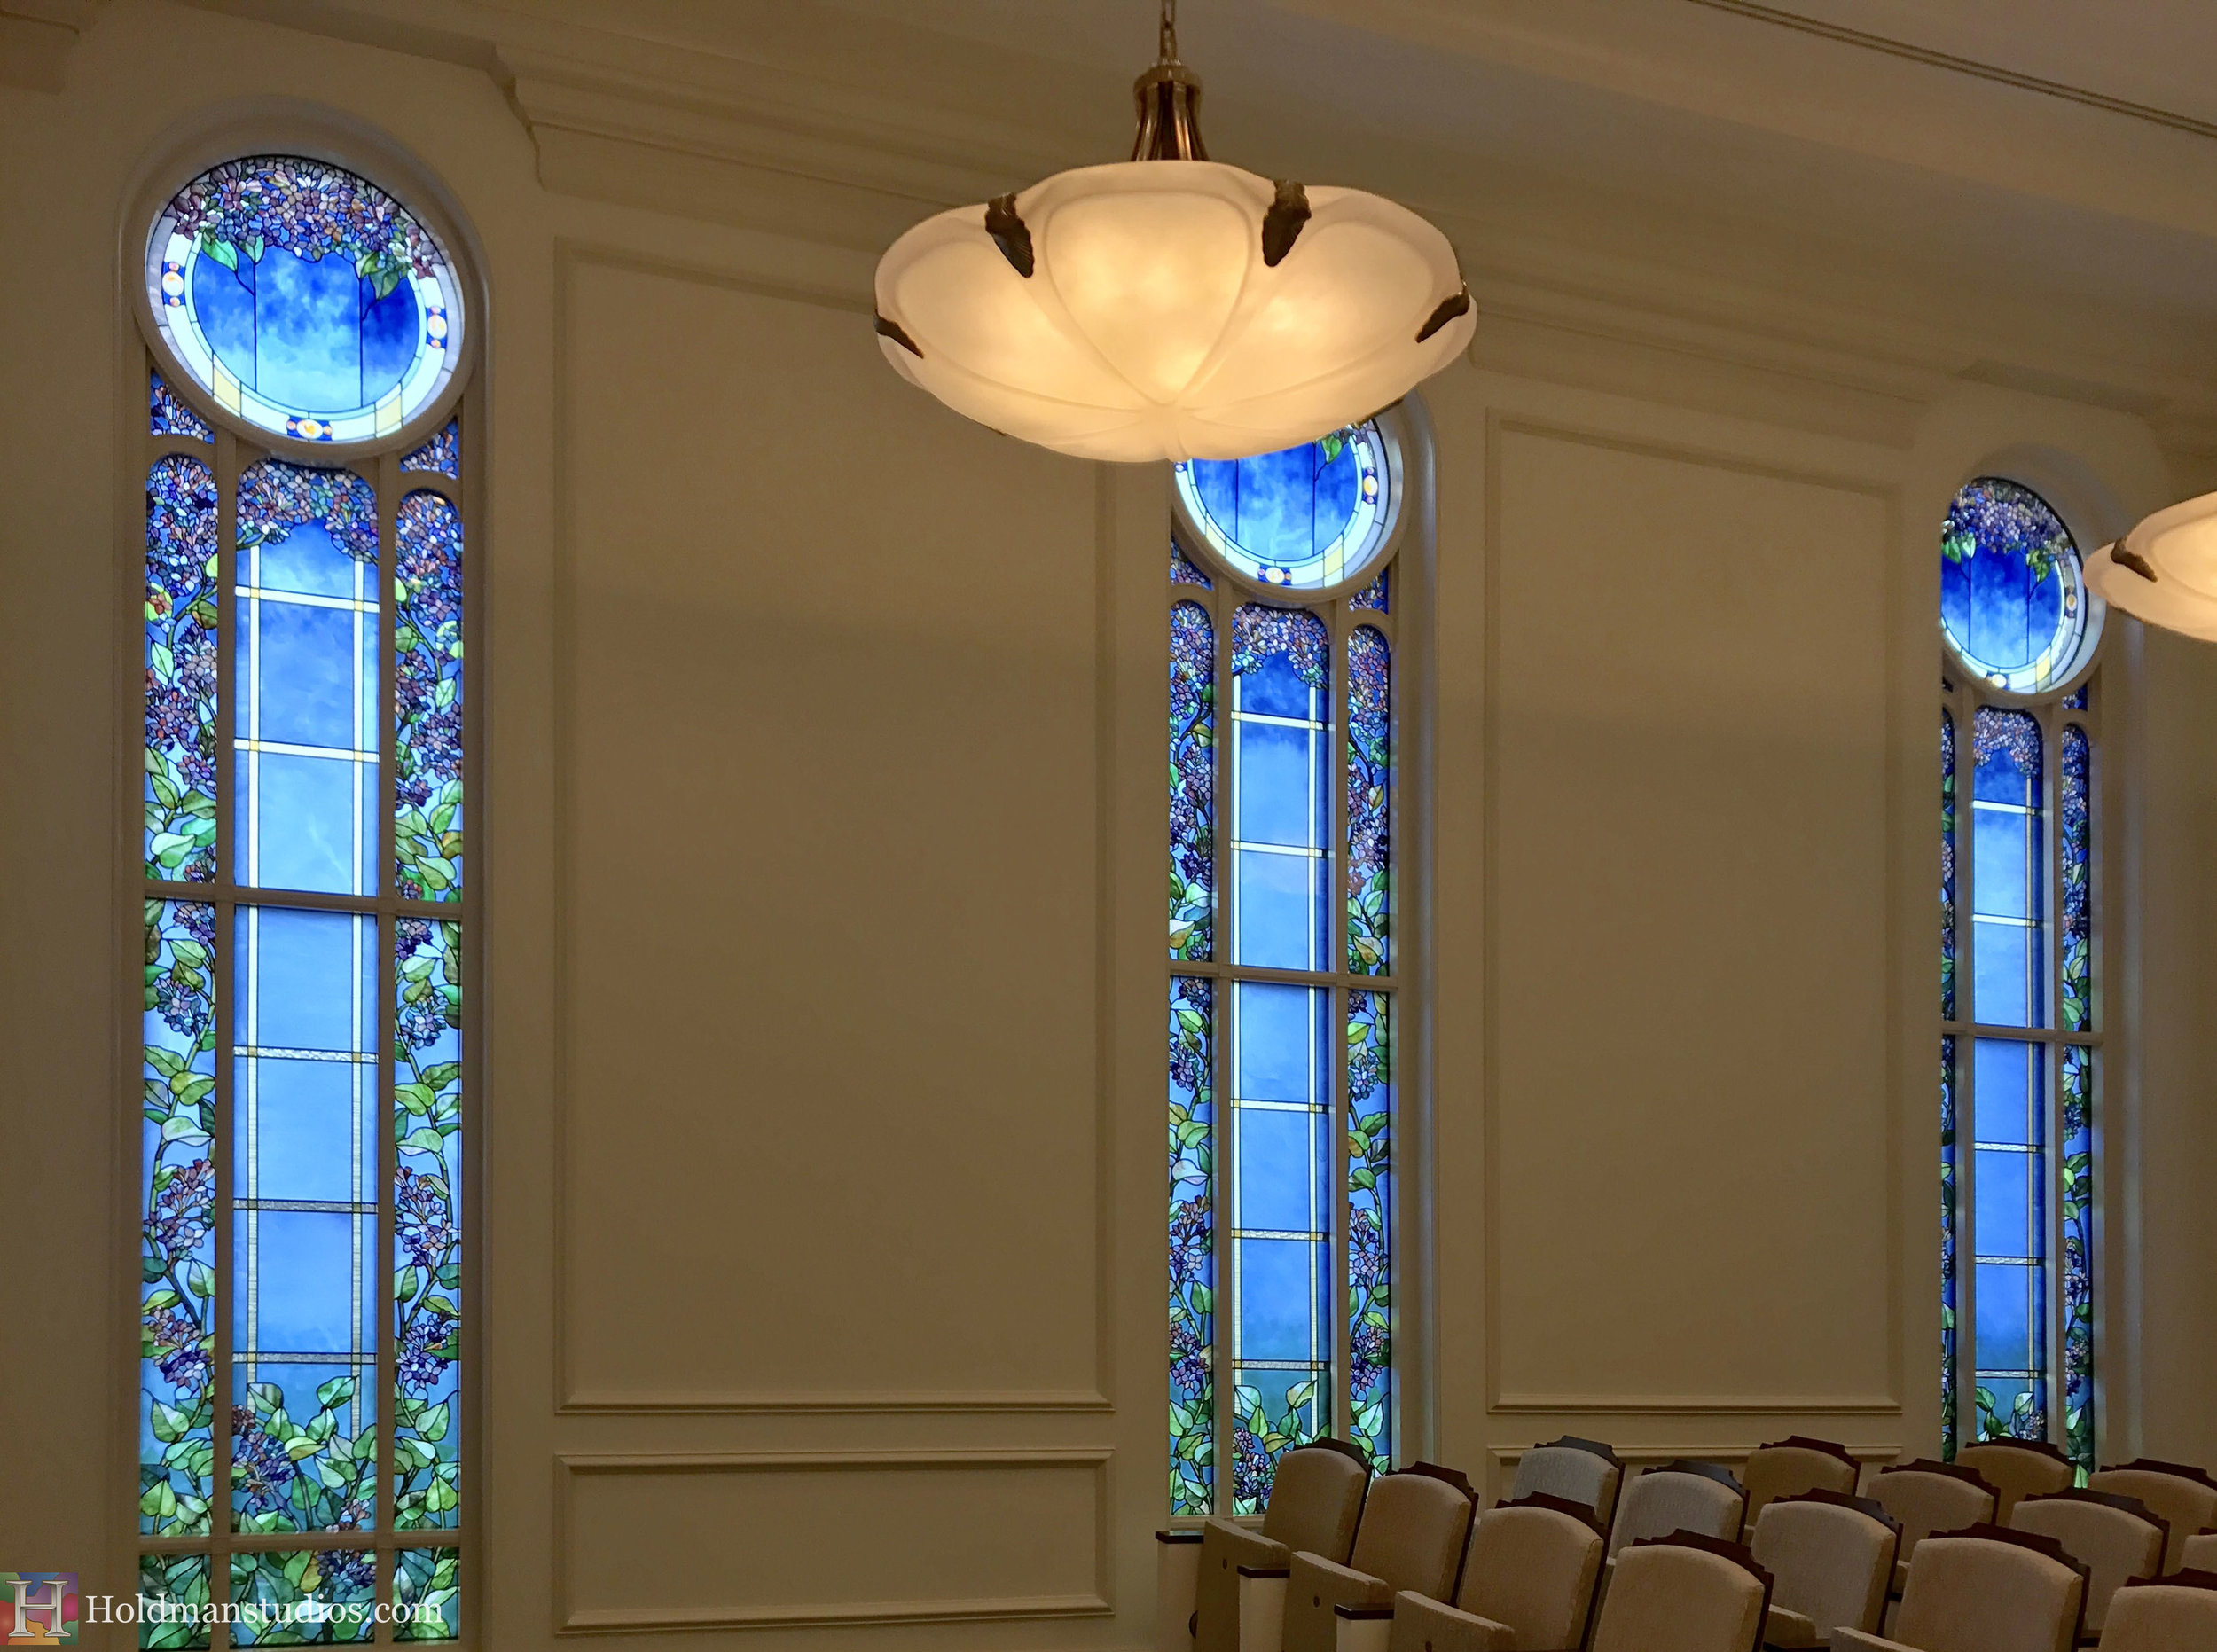 Holdman-Studios-Stained-Glass-Paris-LDS-Temple-Lilac-Flowers-Leaves-Round-Windows.jpg